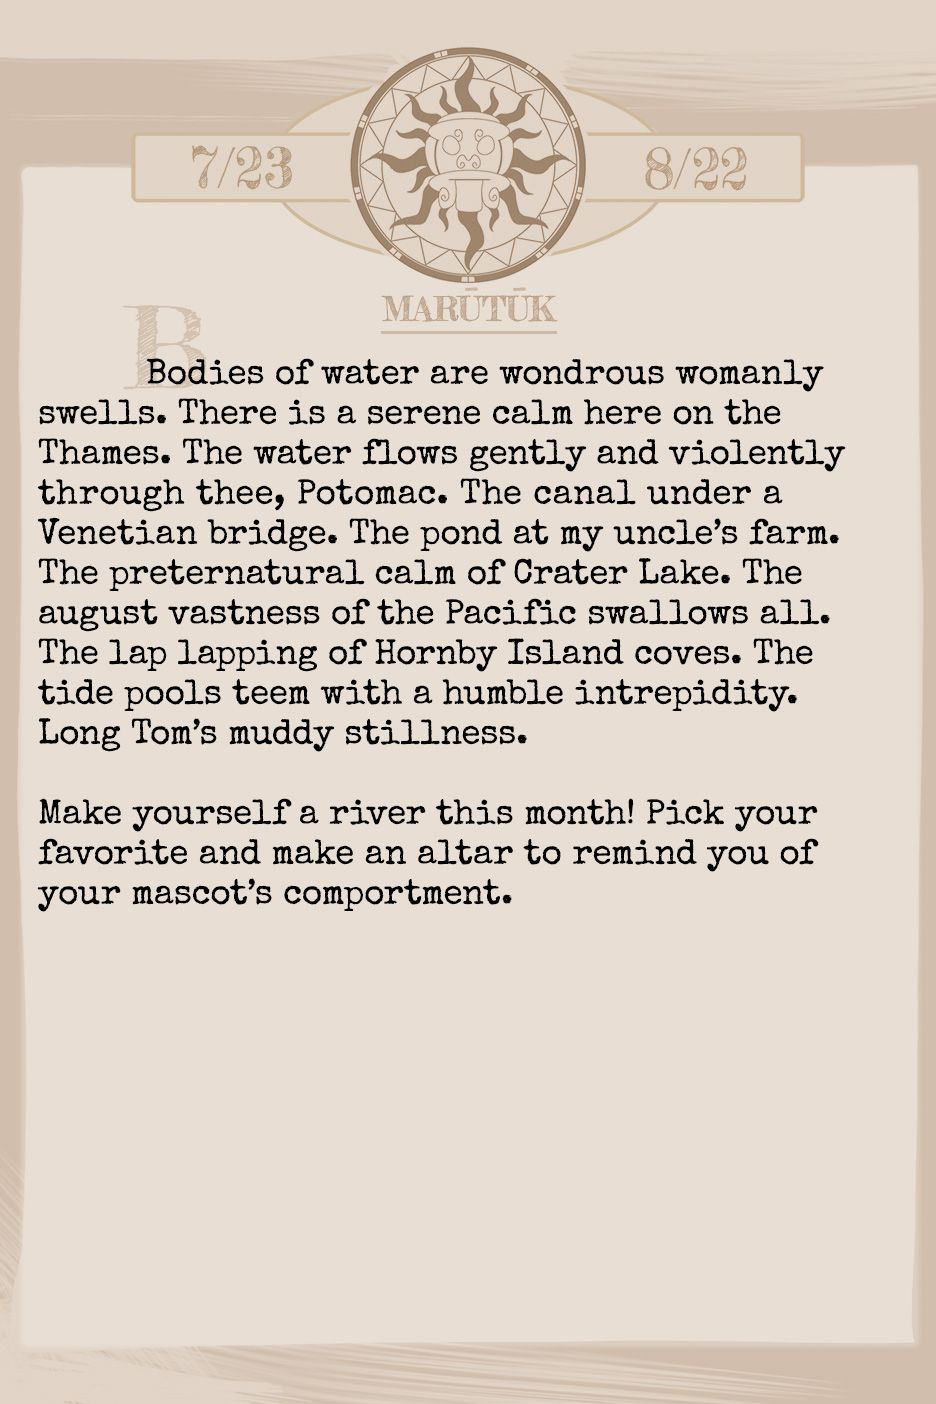 January 2019 Horoscope (Old sign: Leo) Bodies of water are wondrous womanly swells. There is a serene calm here on the Thames. The water flows gently and violently through thee, Potomac. The canal under a Venetian bridge. The pond at my uncle's farm. The preternatural calm of Crater Lake. The august vastness of the Pacific swallows all. The lap lapping of Hornby Island coves. The tide pools teem with a humble intrepidity. Long Tom's muddy stillness. Make yourself a river this month! Pick your favorite and make an altar to remind you of your mascot's comportment.